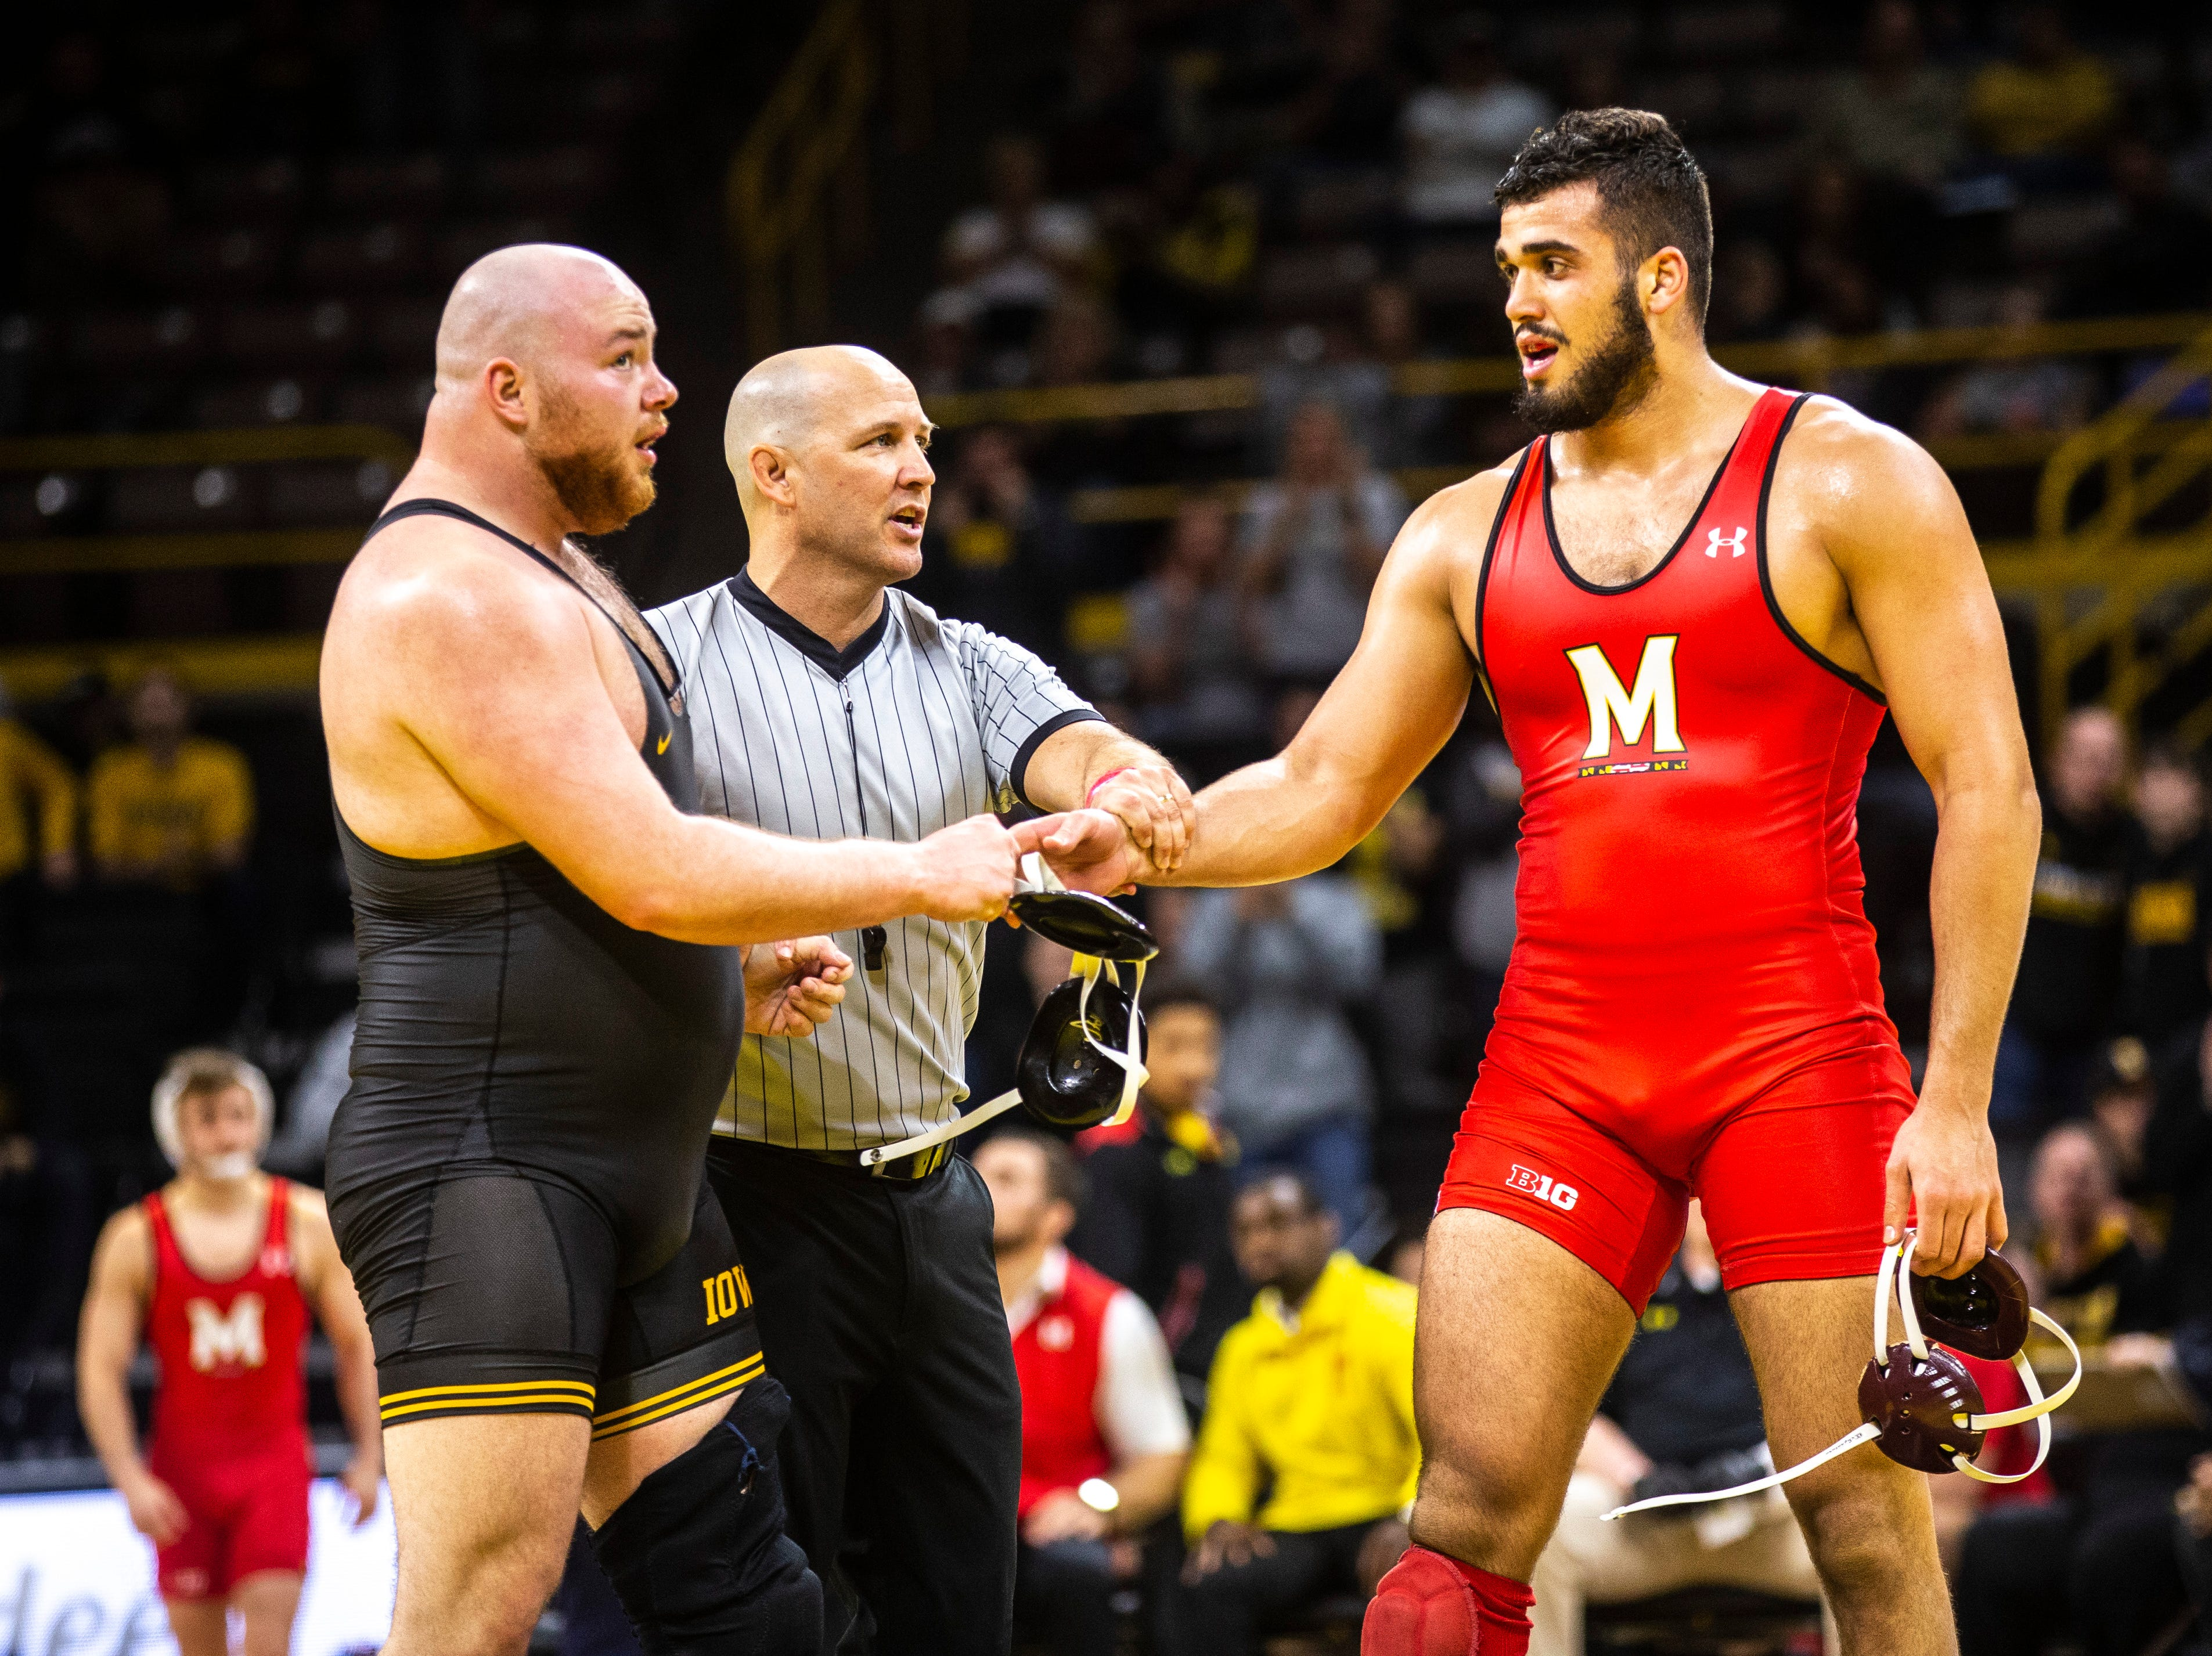 Iowa's Sam Stoll, left, shakes hands with Maryland's Youssif Hemida at 285 after scoring a 1-0 decision during a NCAA Big Ten Conference wrestling dual on Friday, Feb. 8, 2019 at Carver-Hawkeye Arena in Iowa City, Iowa.